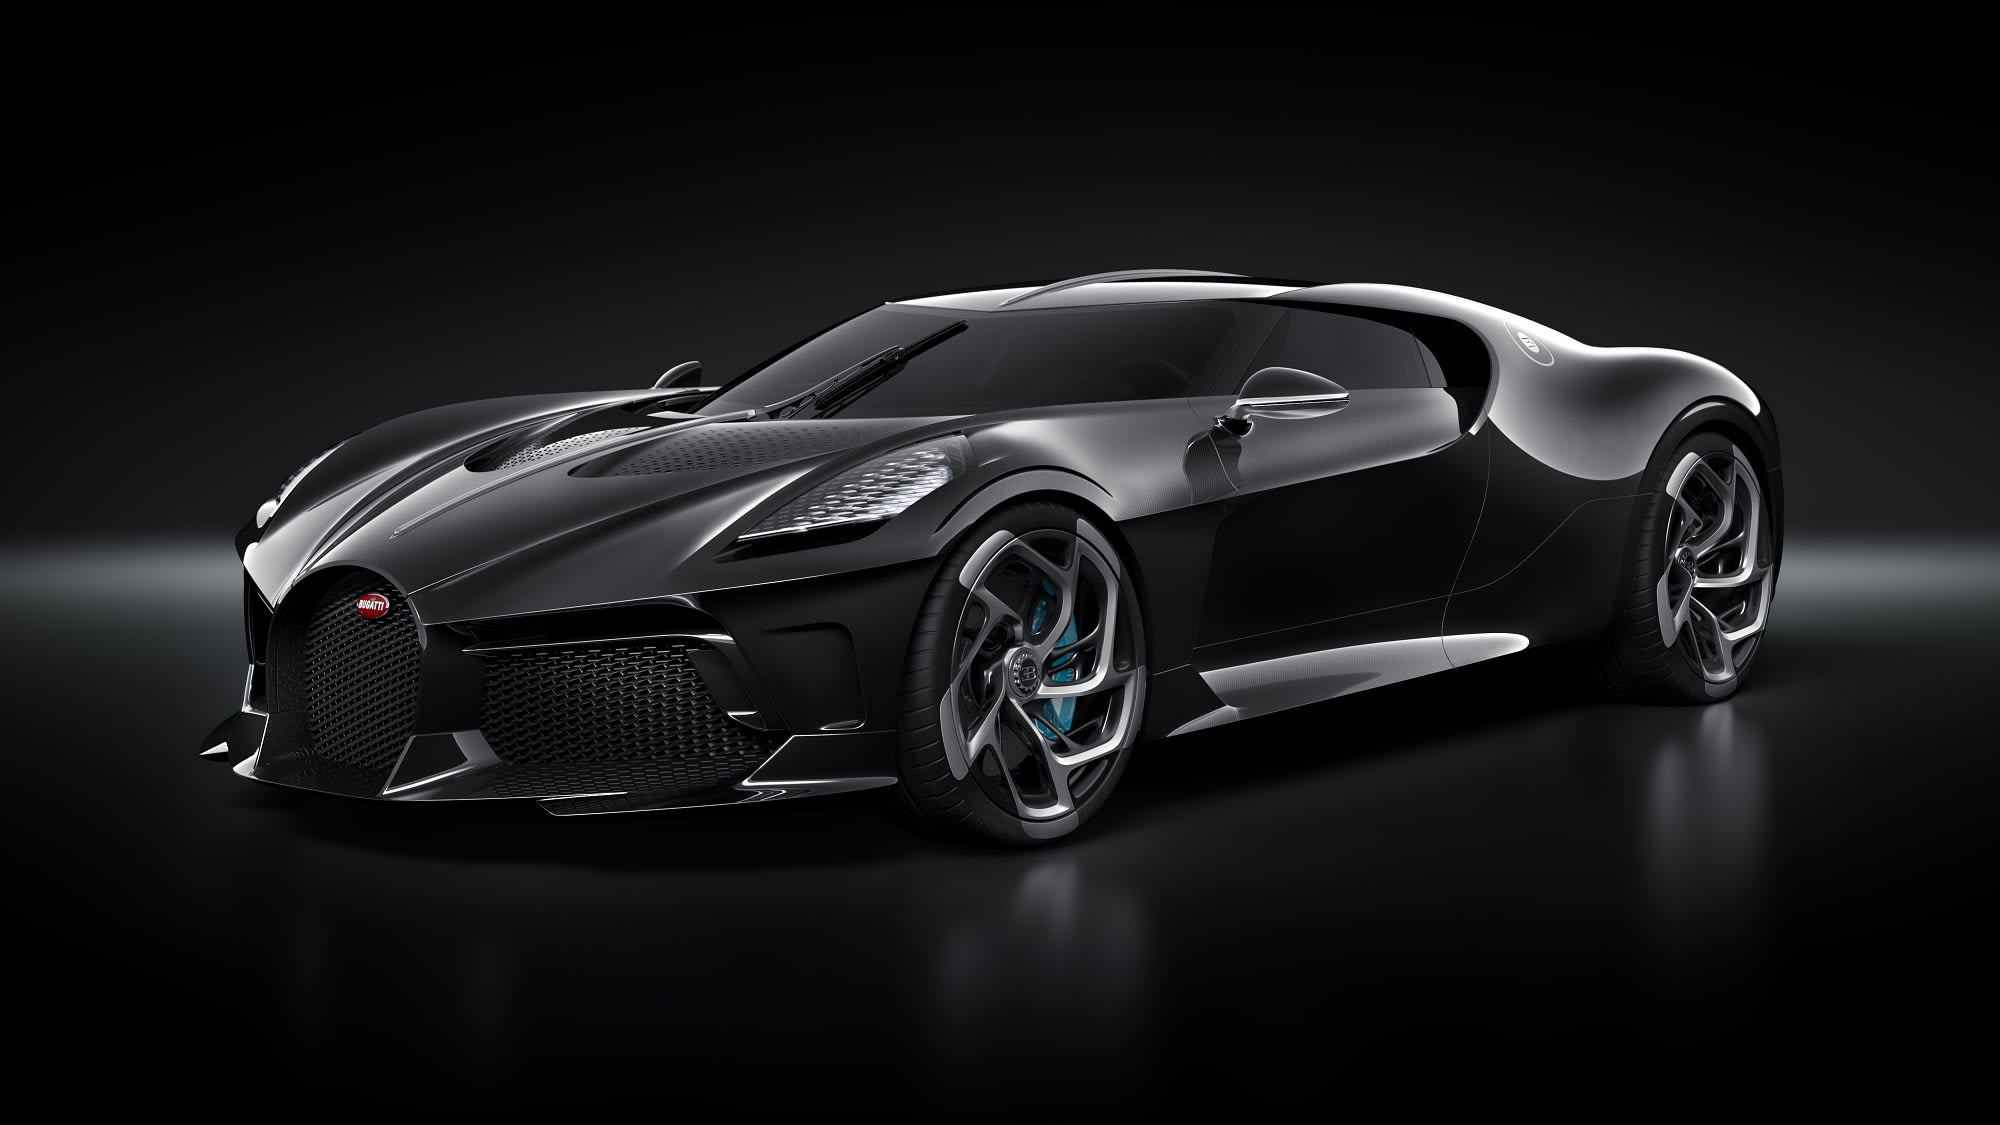 Take A Look Bugatti S La Voiture Noire Car Just Sold For 19 Million